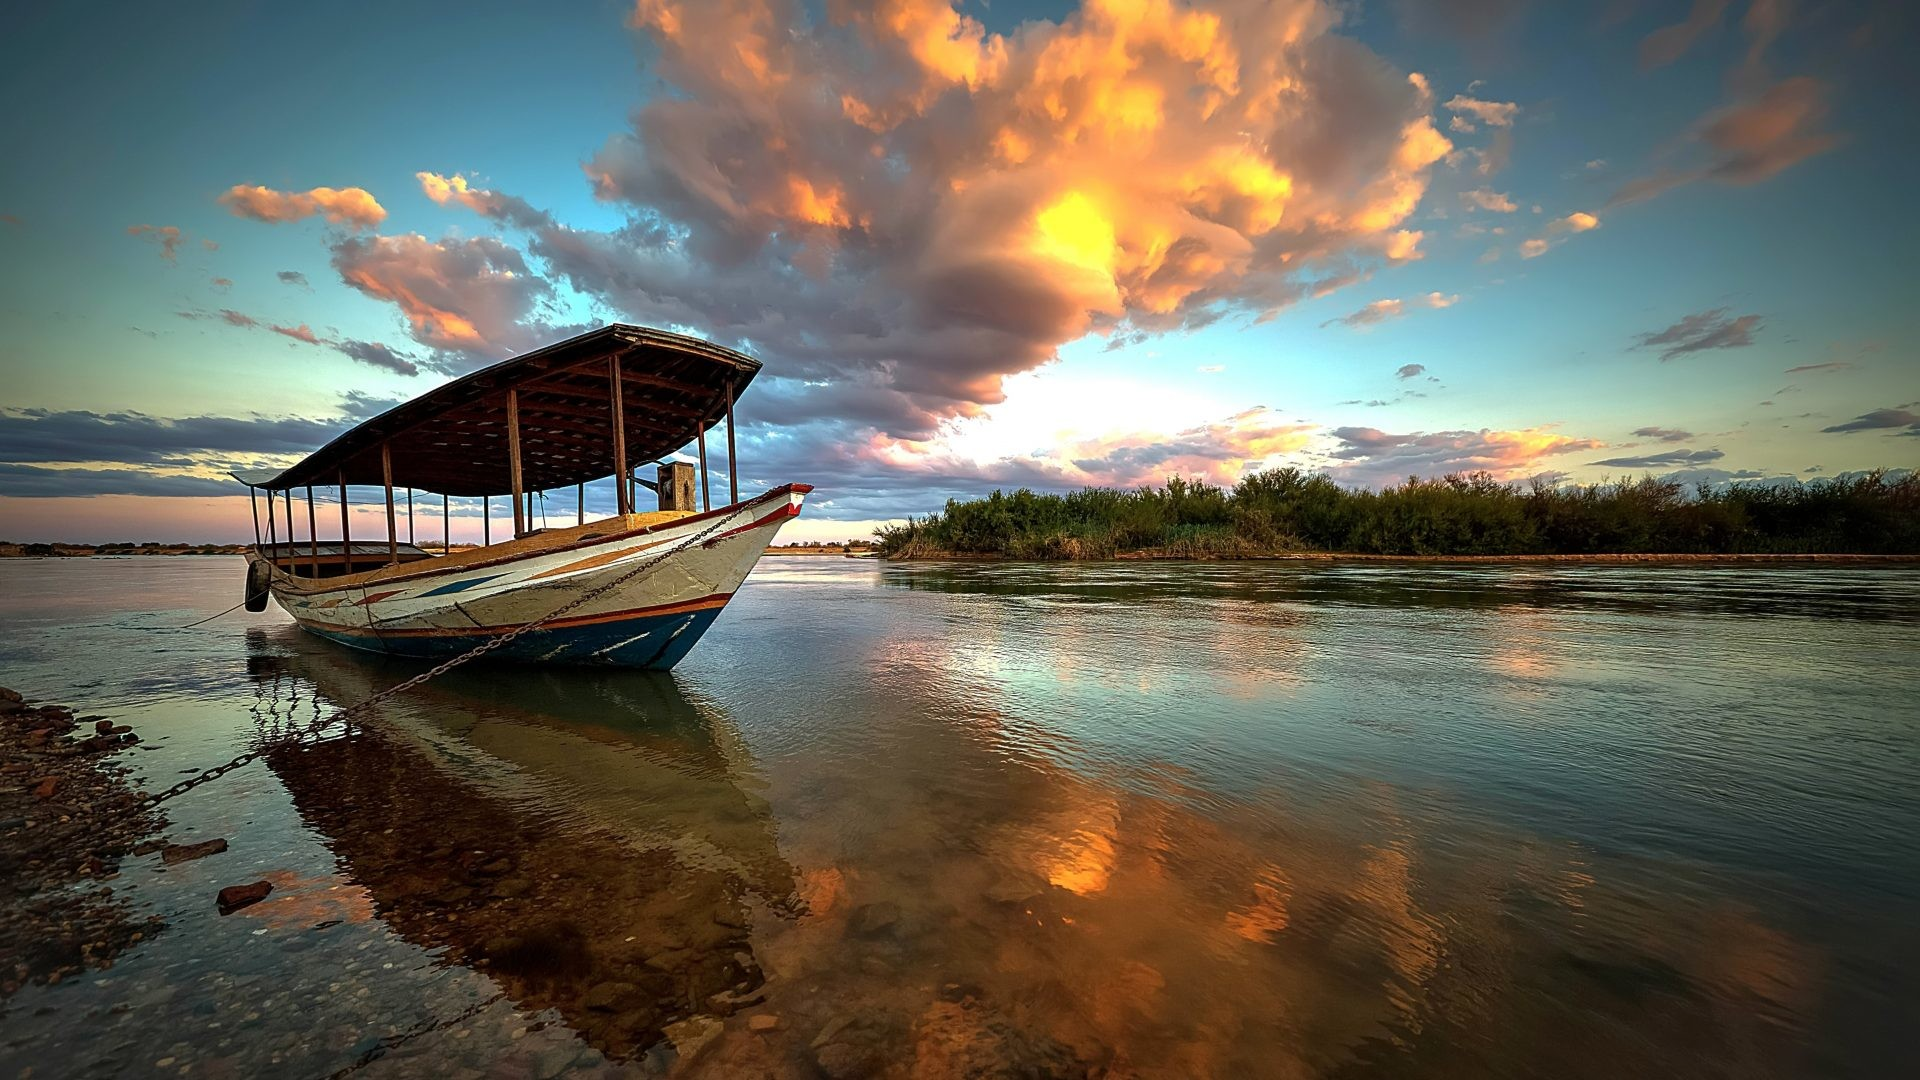 Francisco Tag – Clouds Sky Nature Boats Francisco Rio Brazil Rivers Sao  Wallpaper High Resolution for